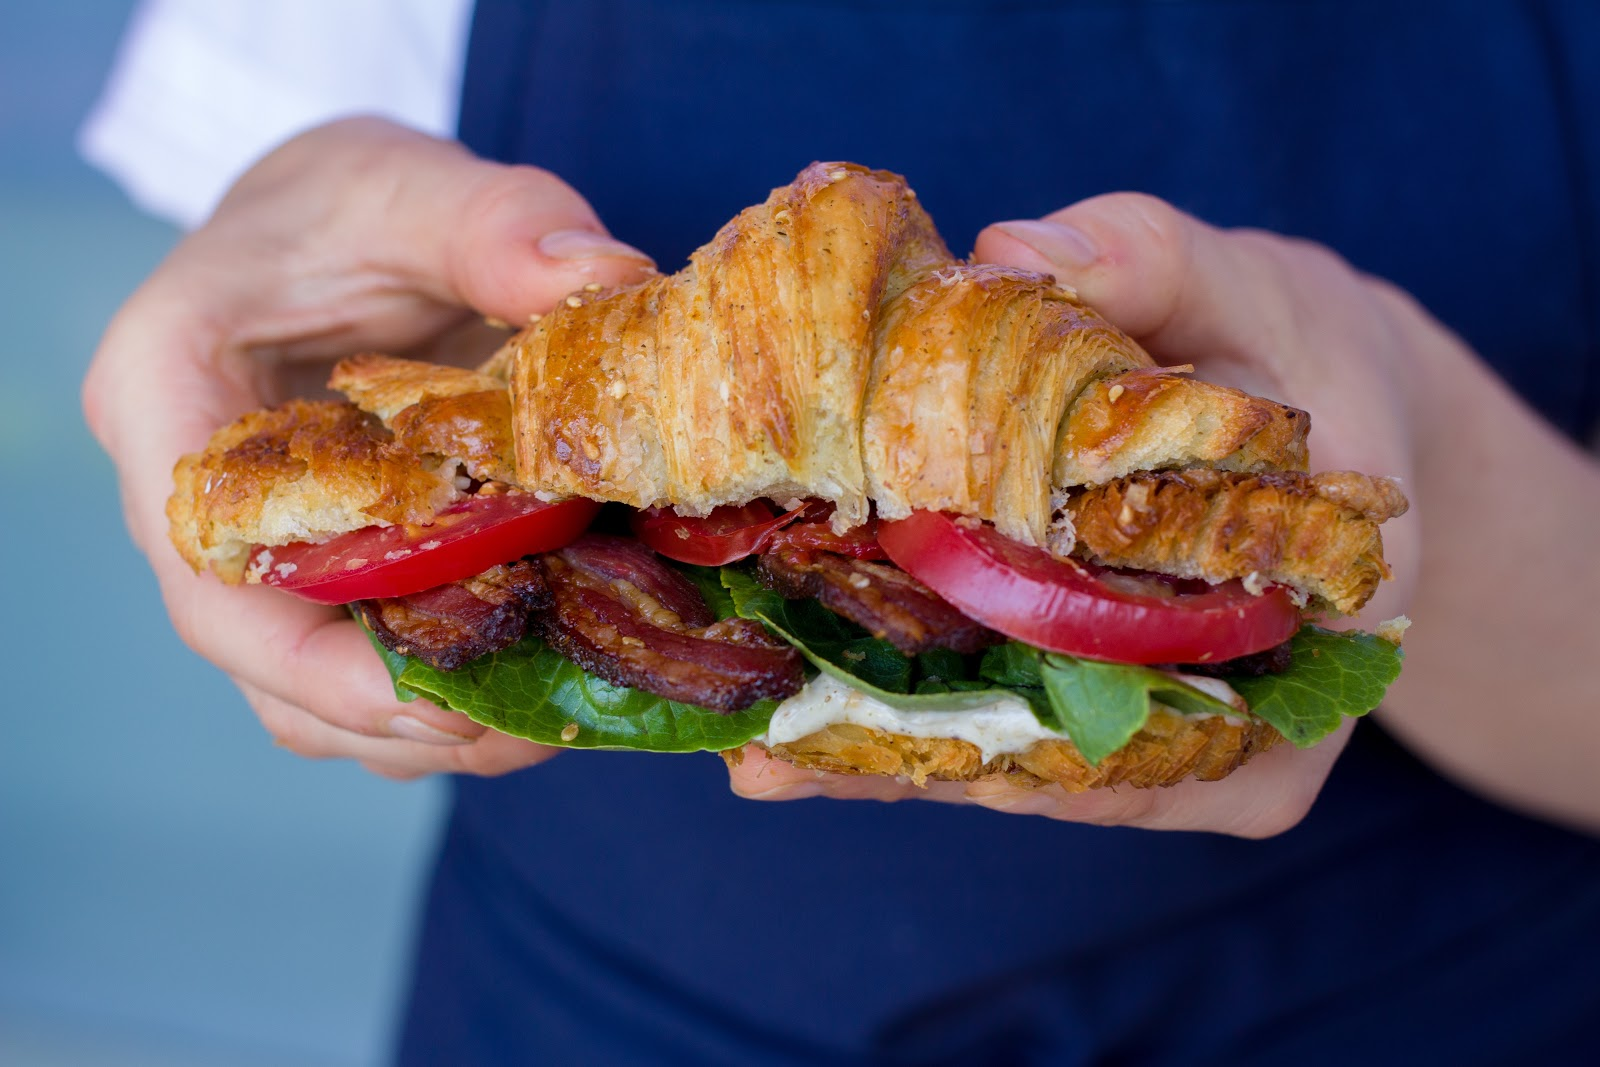 A view of hands holding a BLT on a croissant, with lamb bacon.